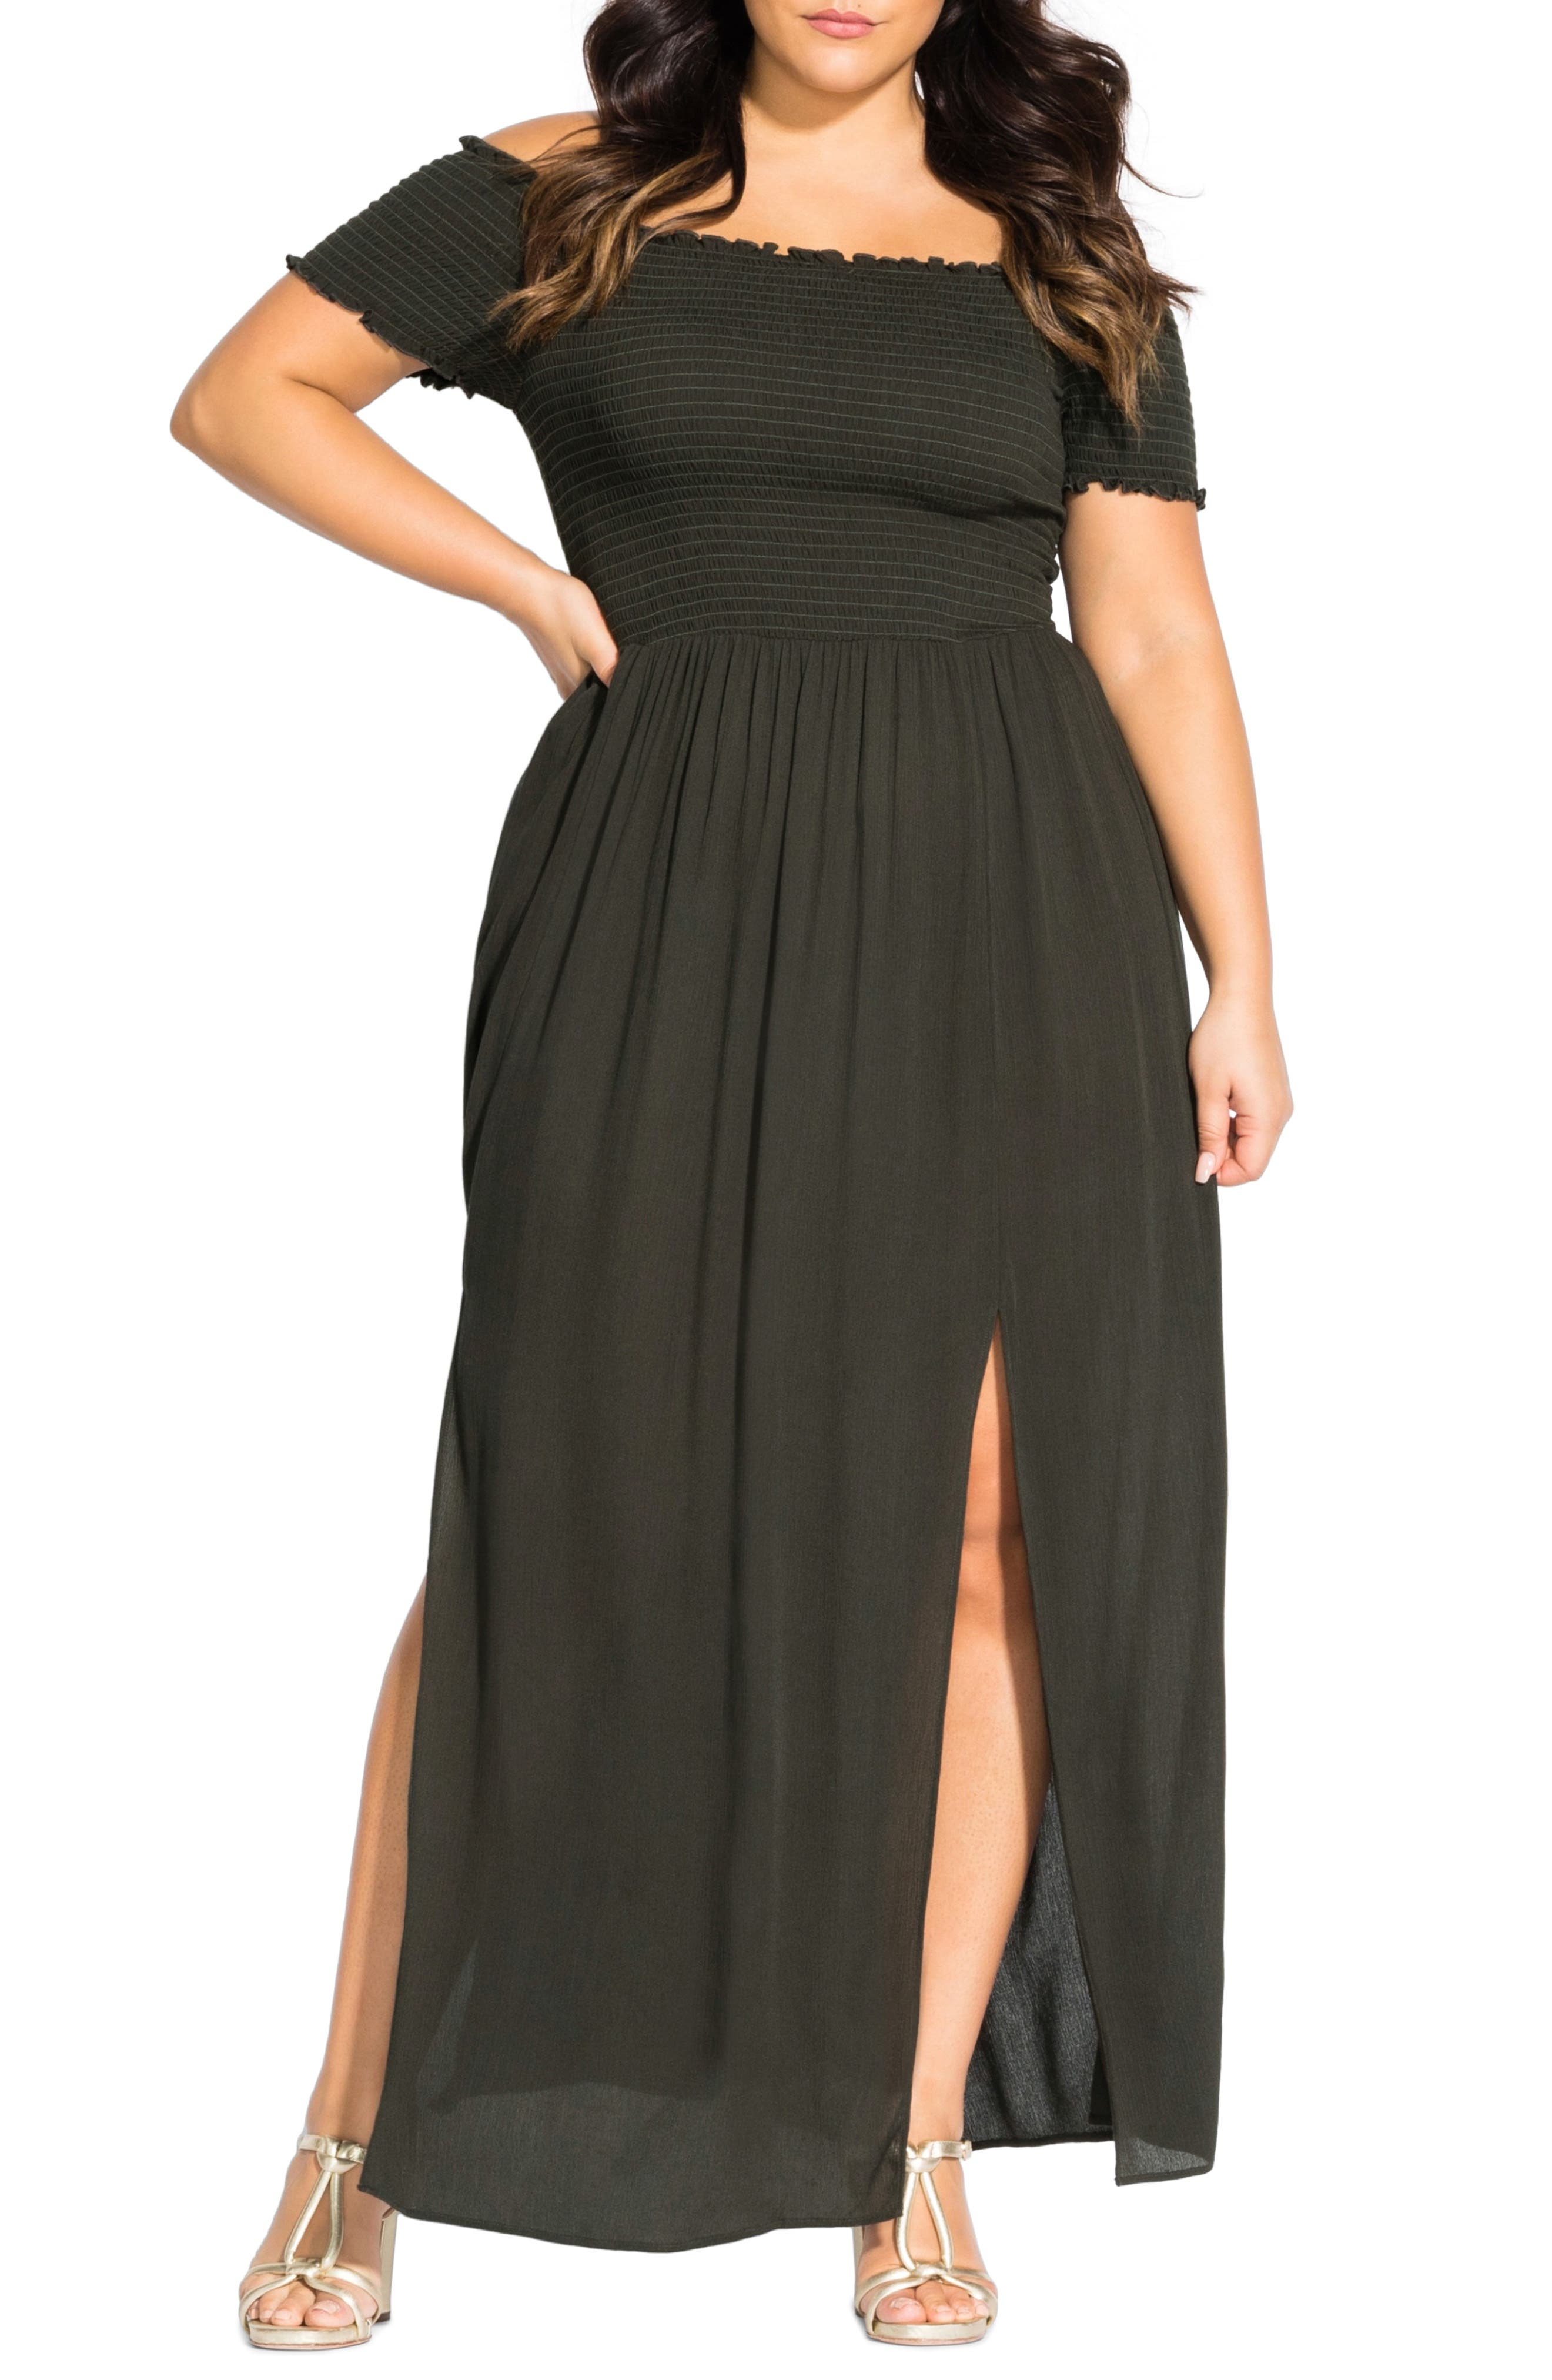 Plus Size City Chic Summer Passion Off The Shoulder Maxi Sundress, Green